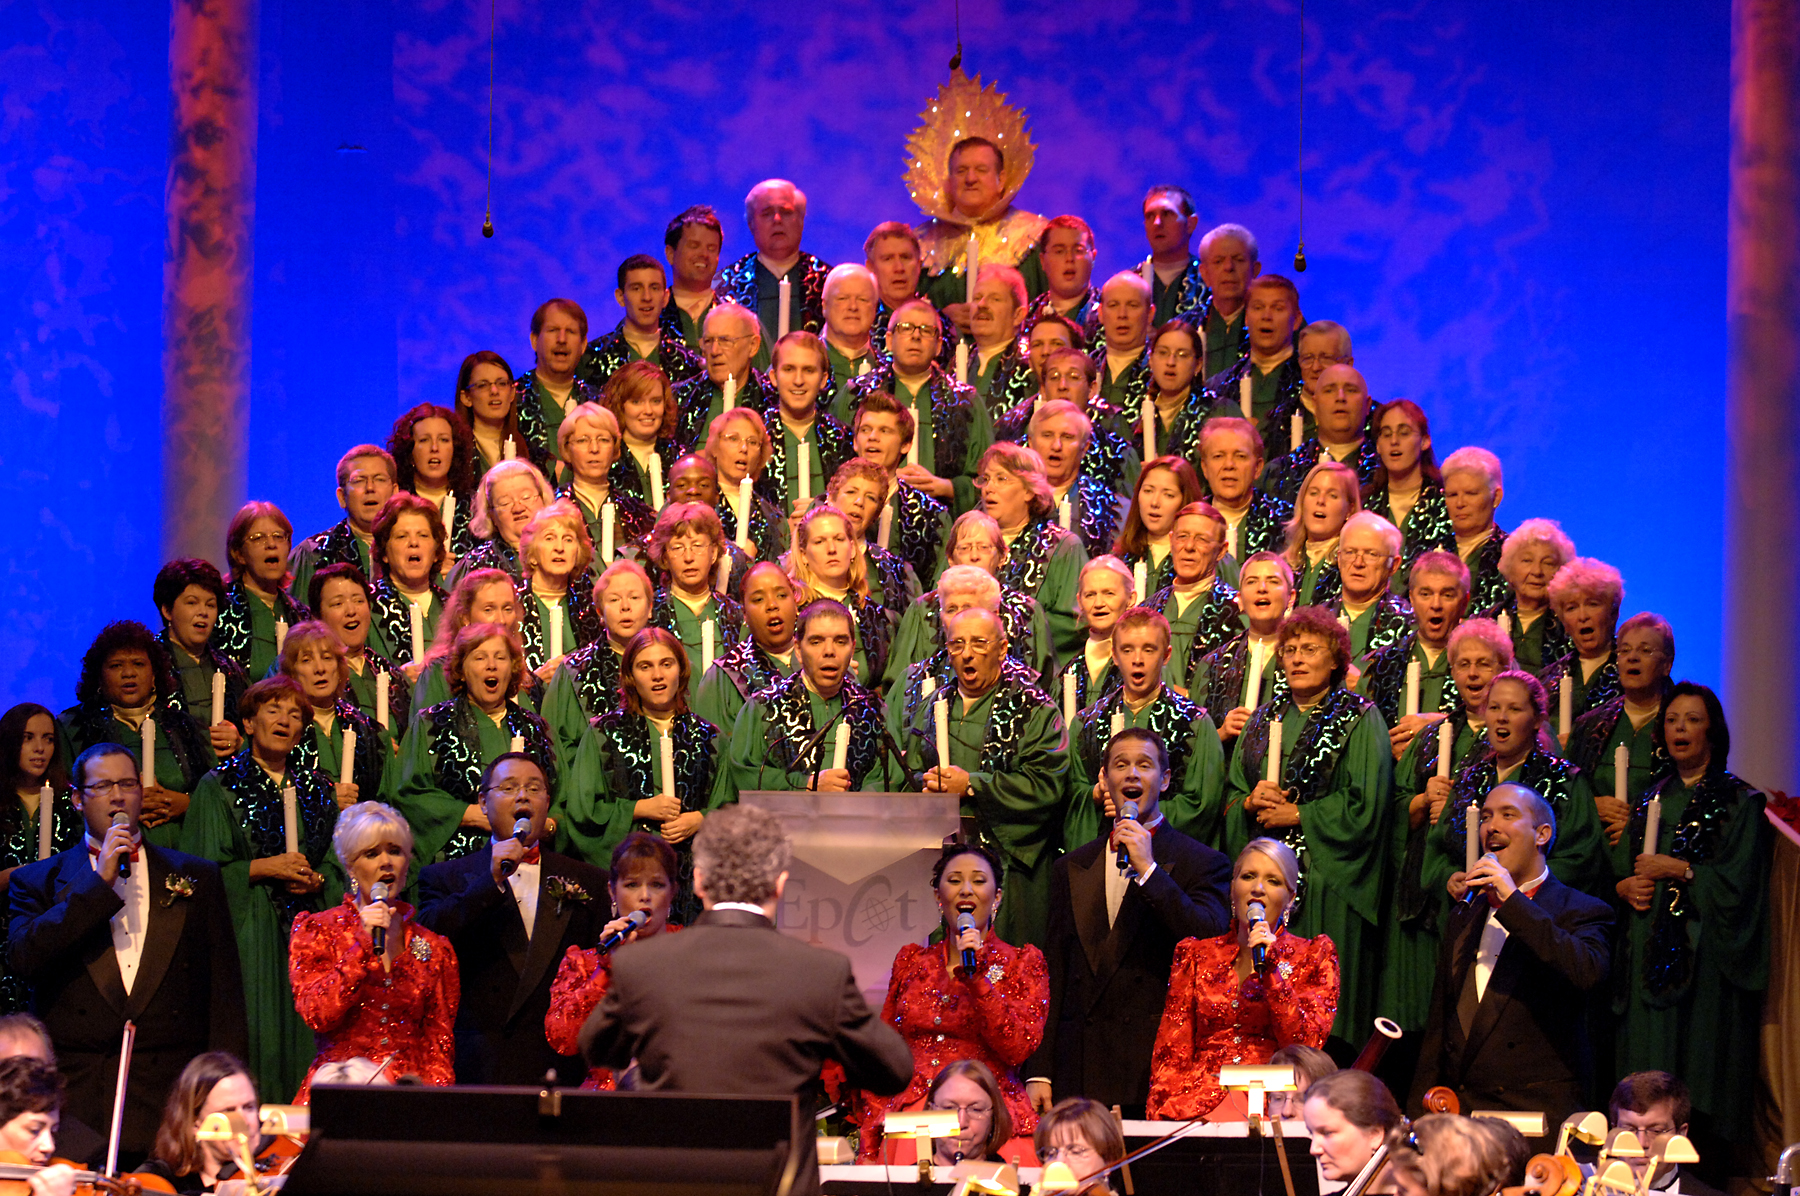 Disney world candlelight processional dining package the disney food